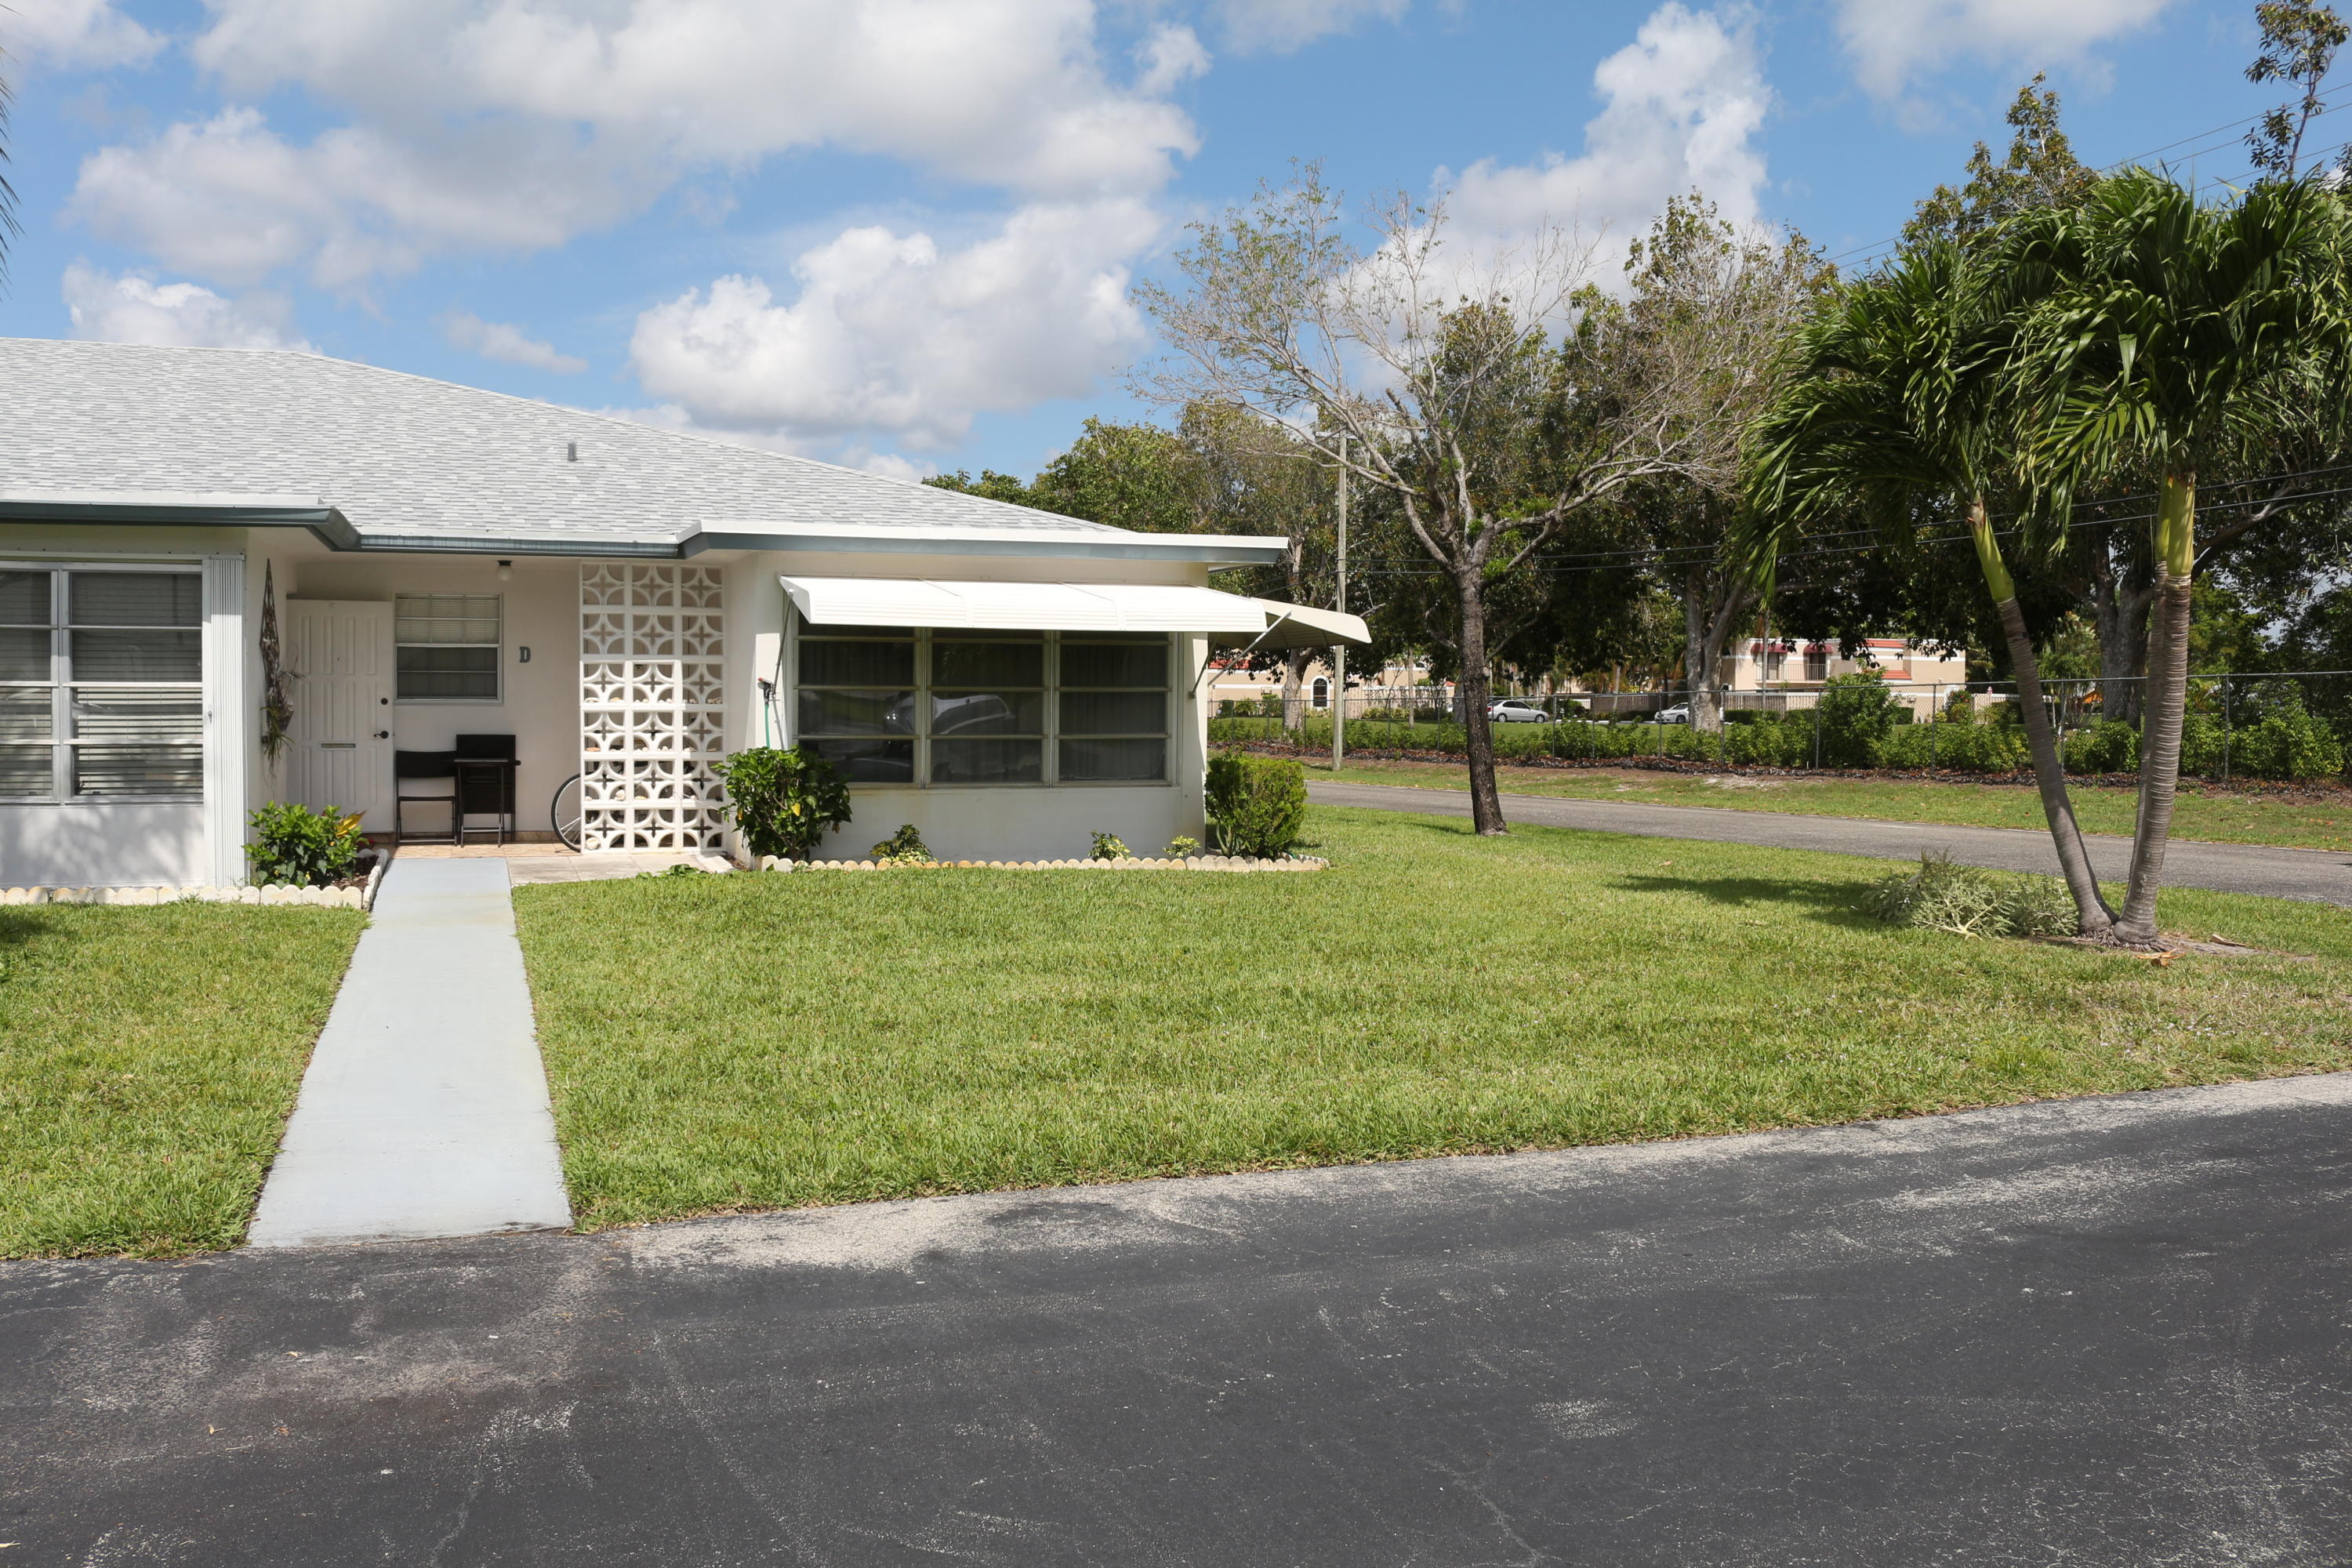 A 2-BR, 2-BA villa with outside open patio, within a cul-de-sac.  Updated, tile, wood-laminate, carpeted flooring.  Neutral colors and accents.  Within approixmately 3.5 miles to trendy downtown Delray Beach, white 2 mile strip of white sand beach and The Atlantic Ocean Shoreline.